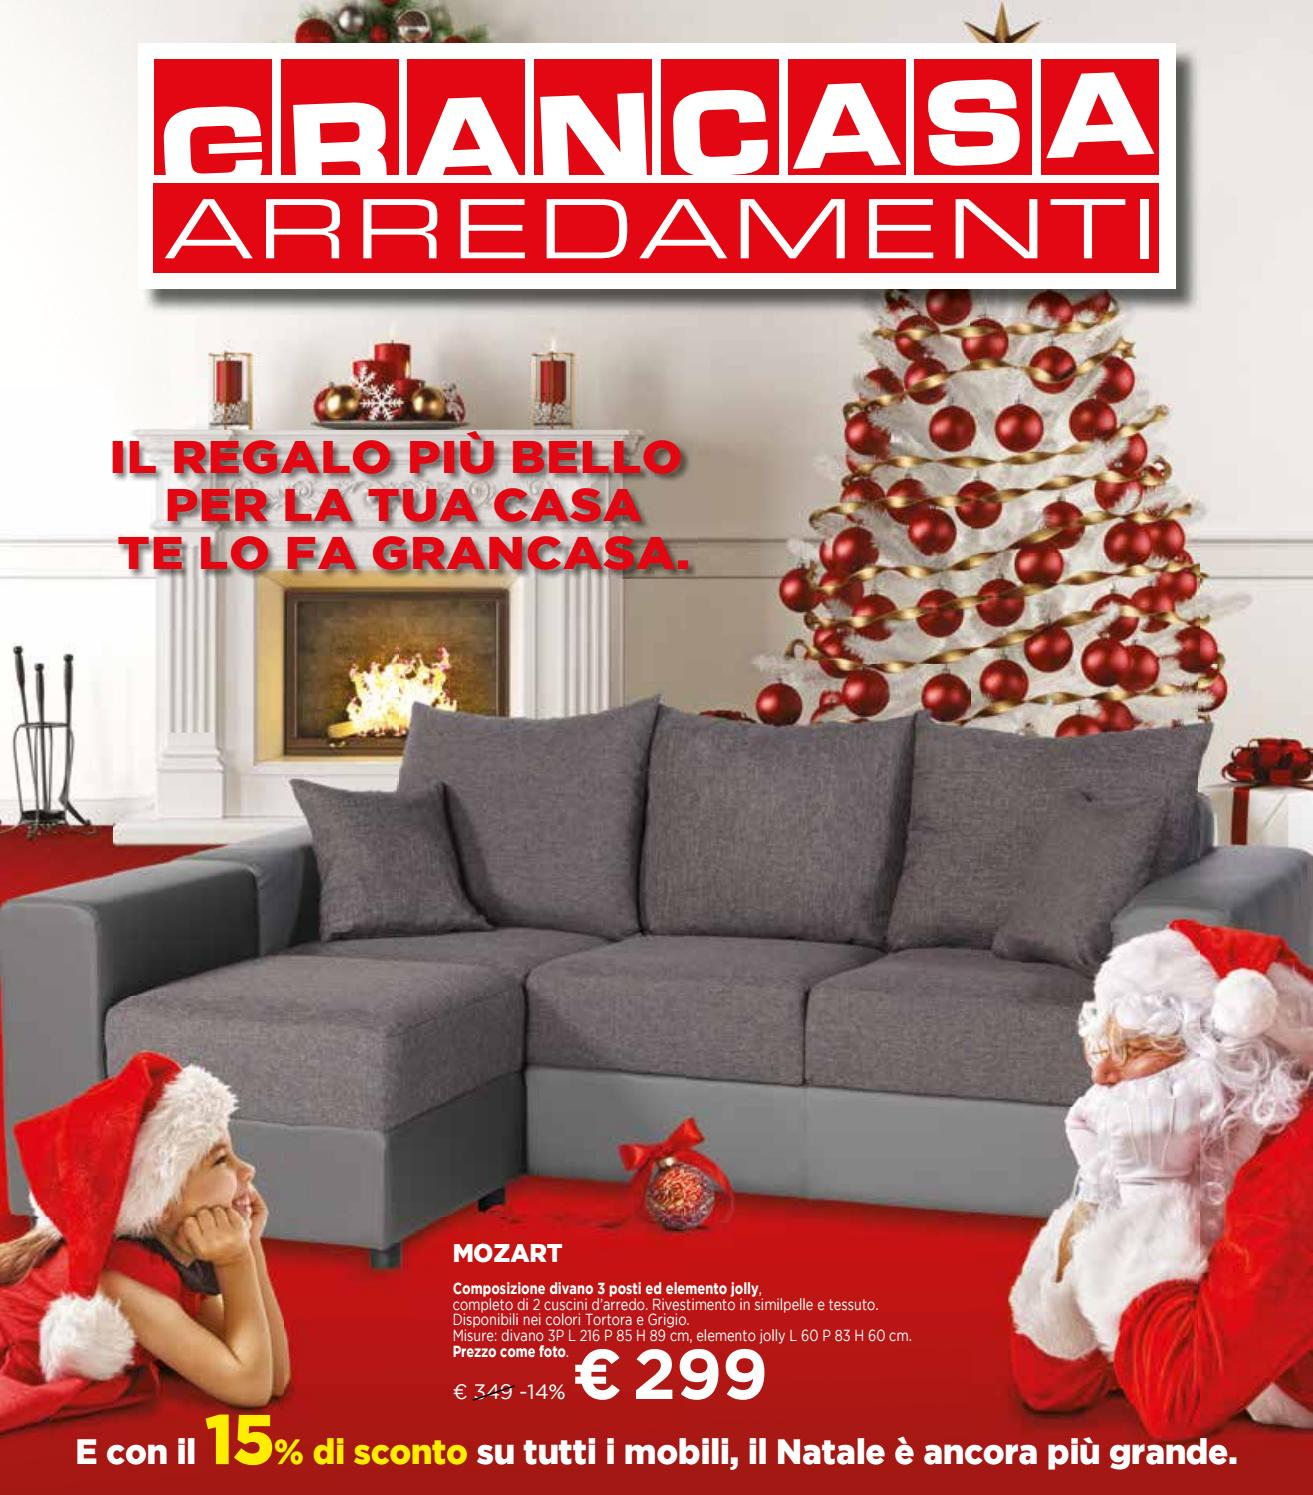 Grancasa 24dic by best of volantinoweb - issuu